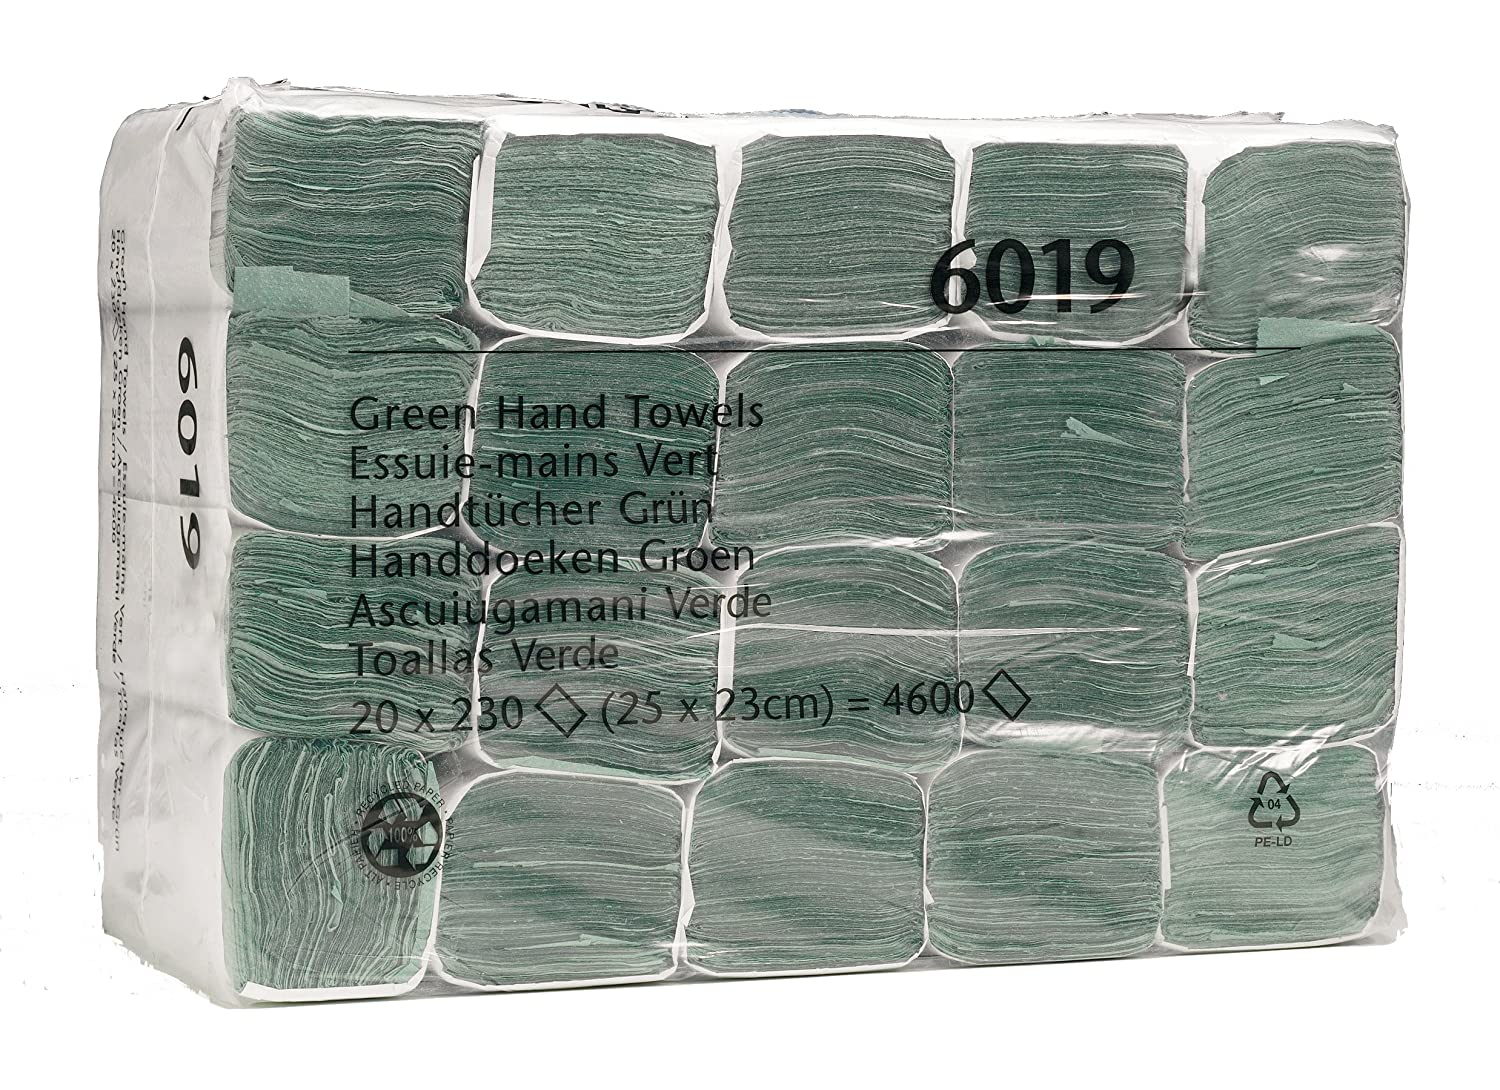 SCOTT* Z-Folded Hand Towels 6019 - 230 green, 1 ply sheets per pack (case contains 20 packs) Kimberly-Clark Professional (EU)